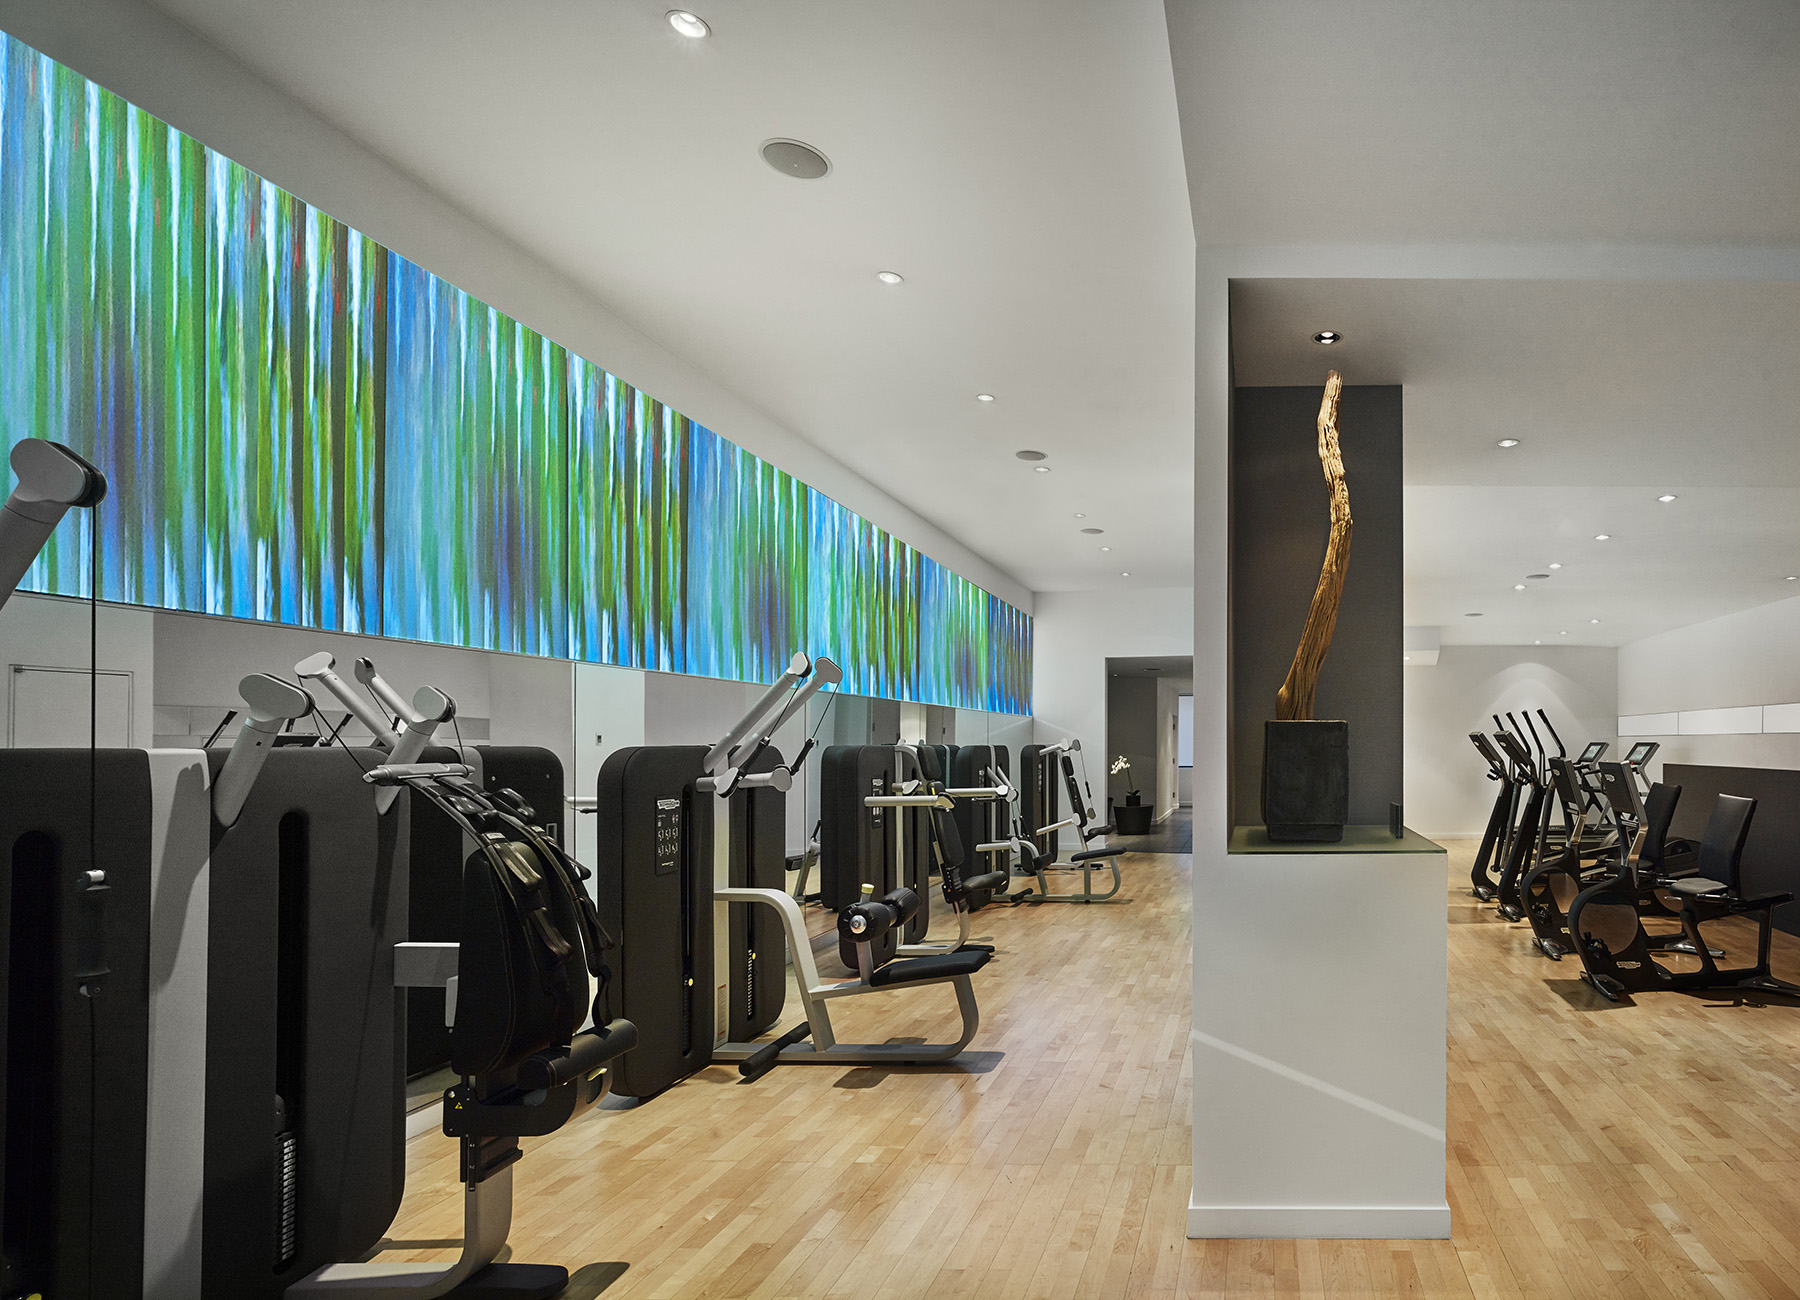 AKA Central Park fitness center with artwork and state-of-the-art cardio equipment